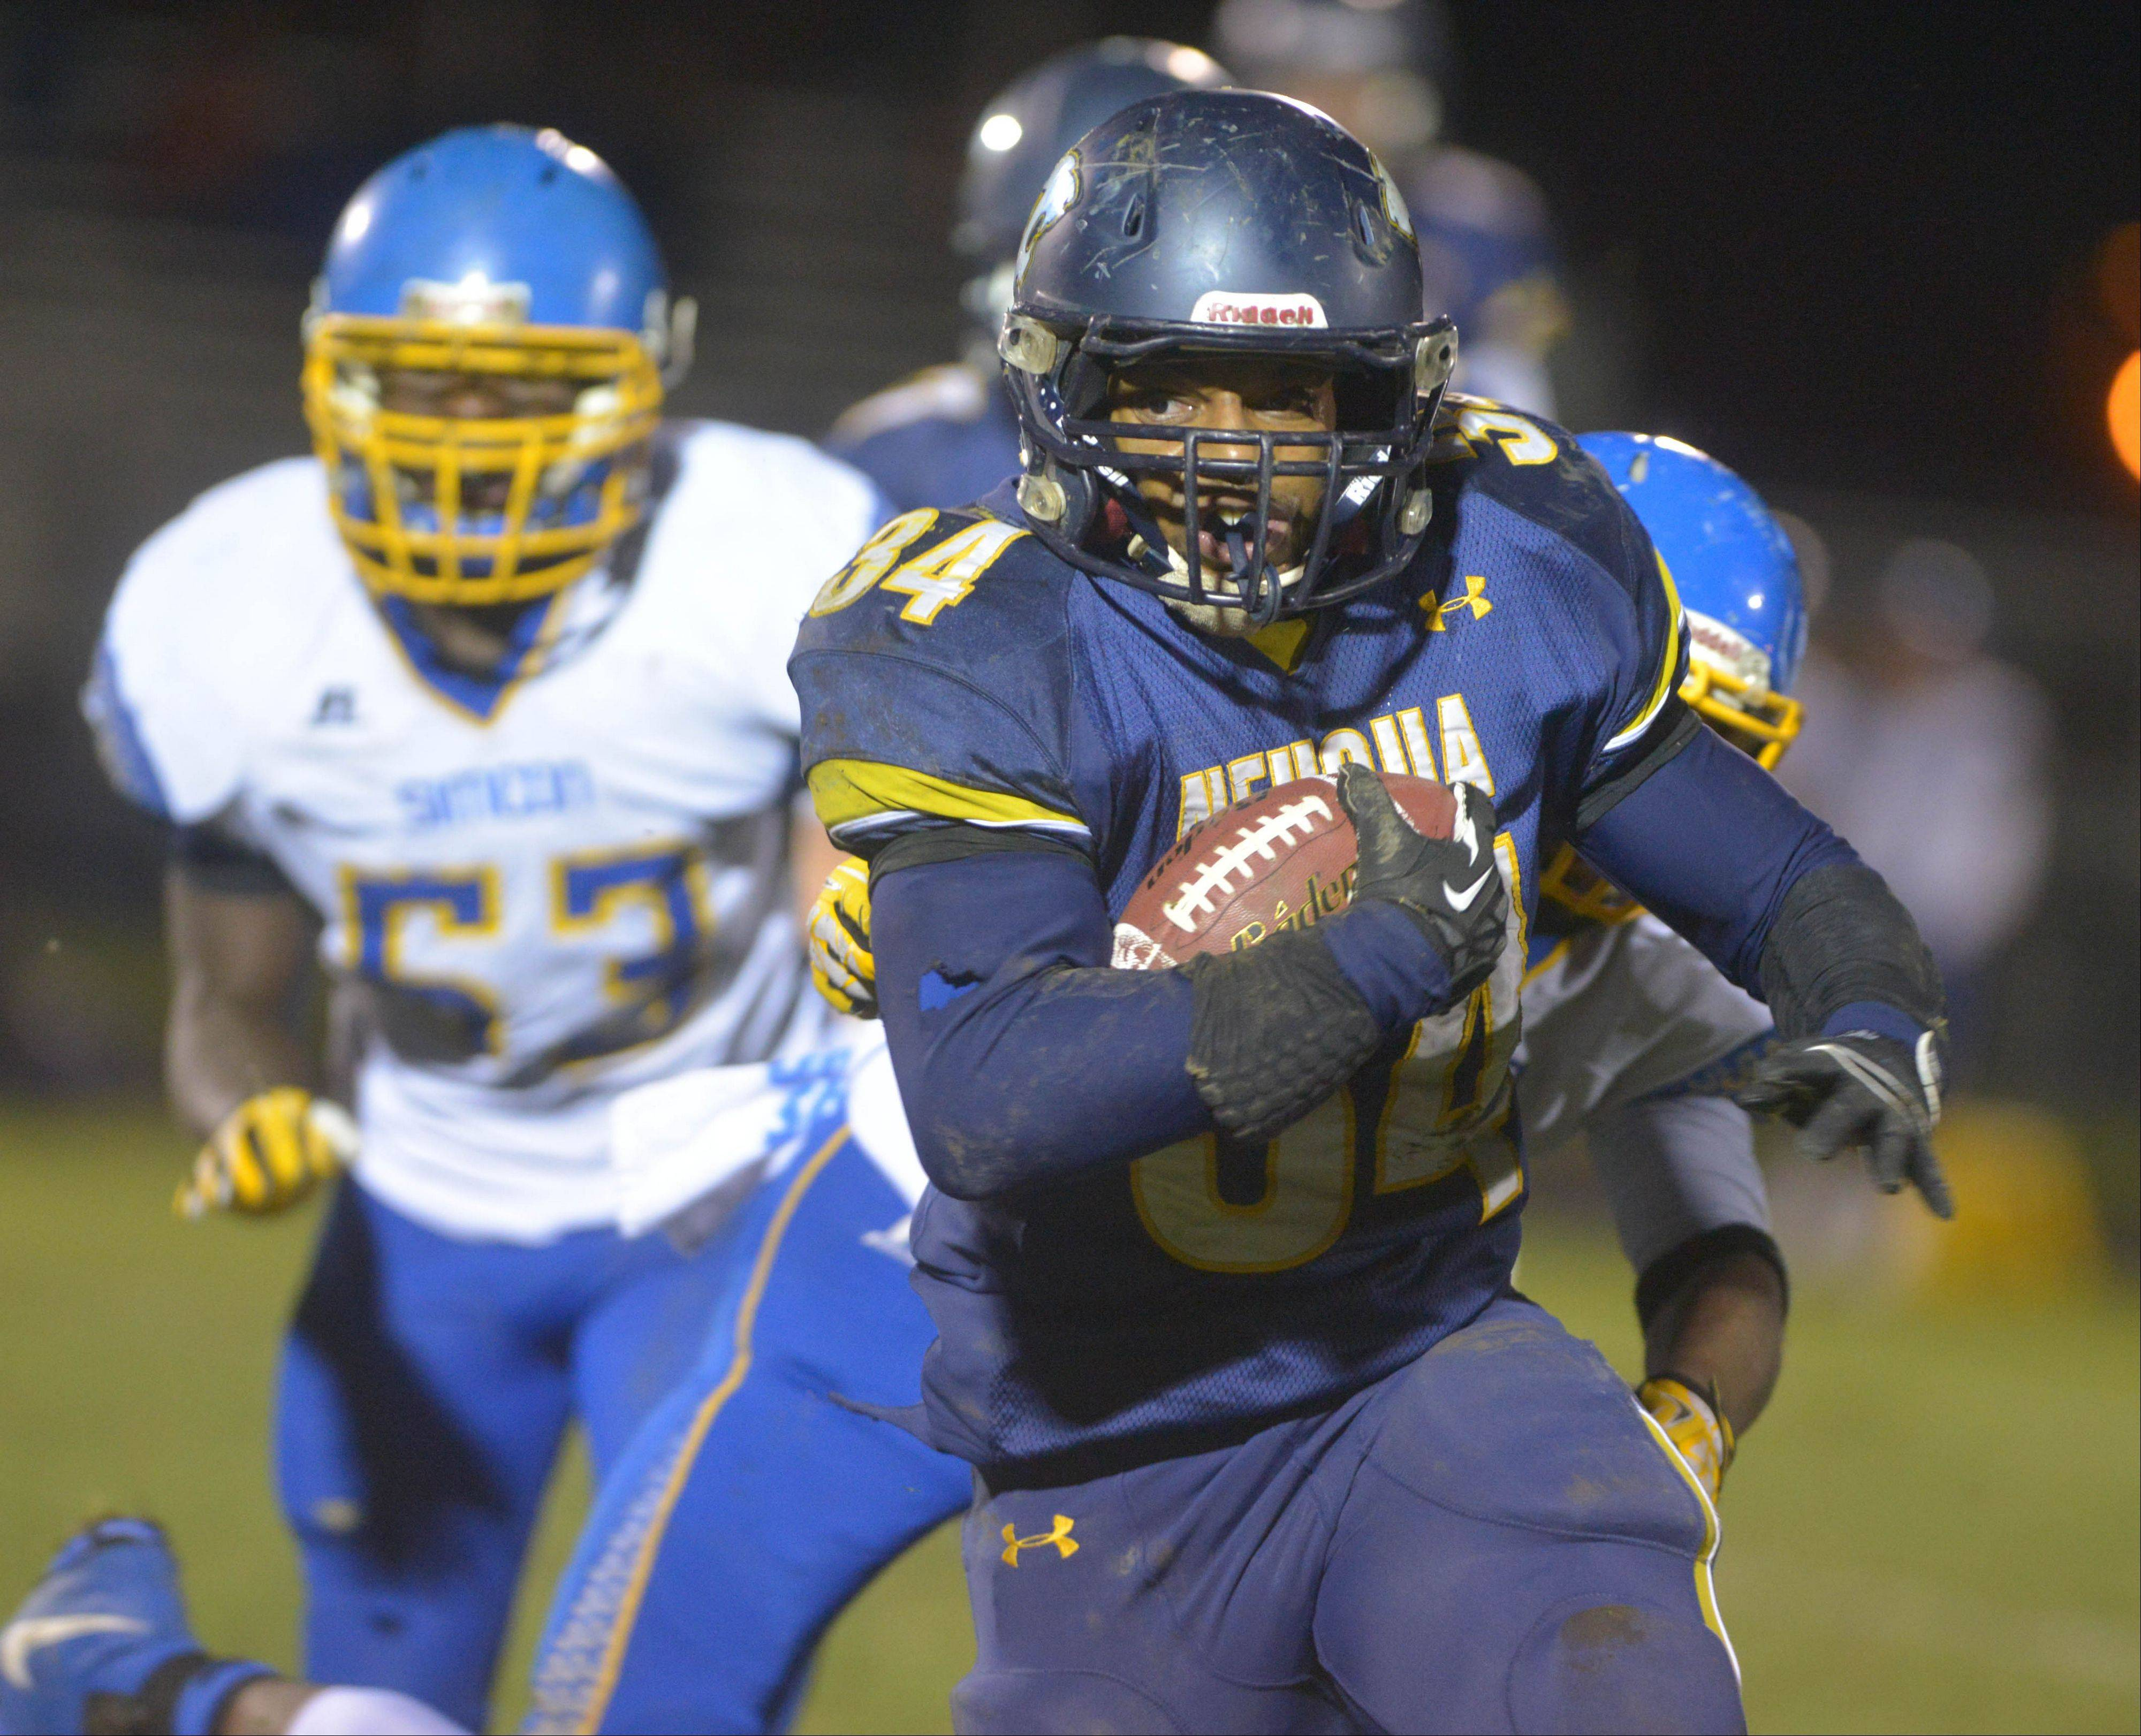 Neuqua Valley's TJ Scruggs moves the ball against Simeon during Saturday's playoff game.